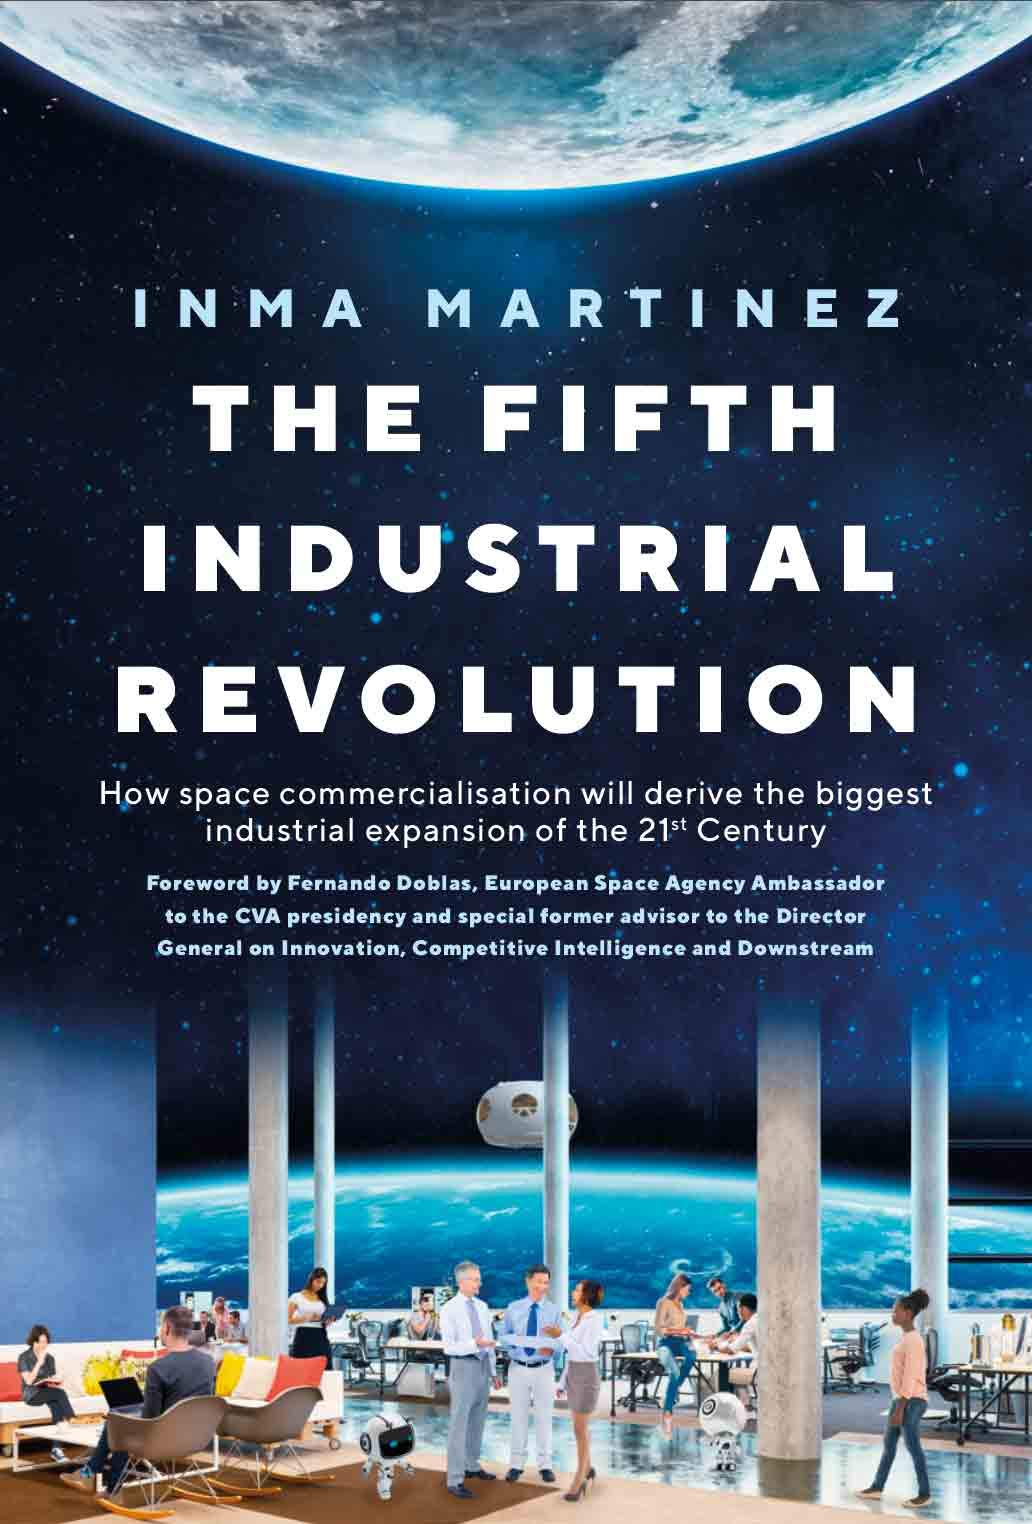 The Fifth Industrial Revolution.